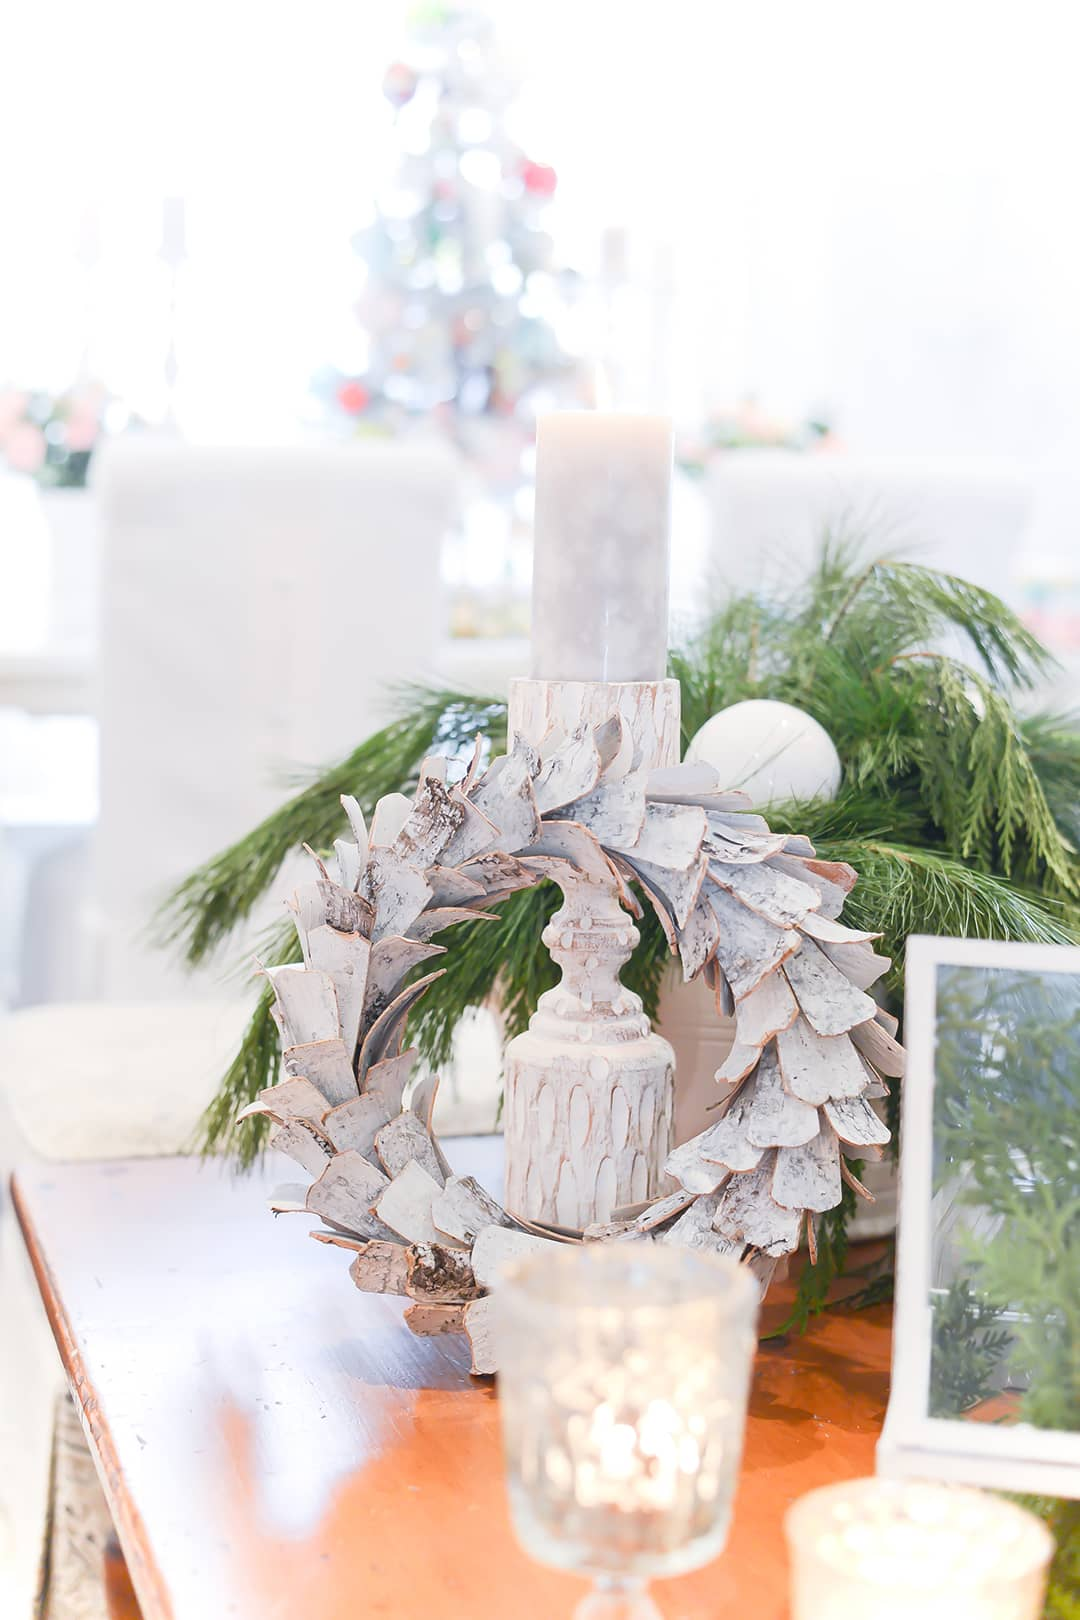 A pine coffee table close up image of flickering white candle sticks, a white birch bark wreath and greenery.